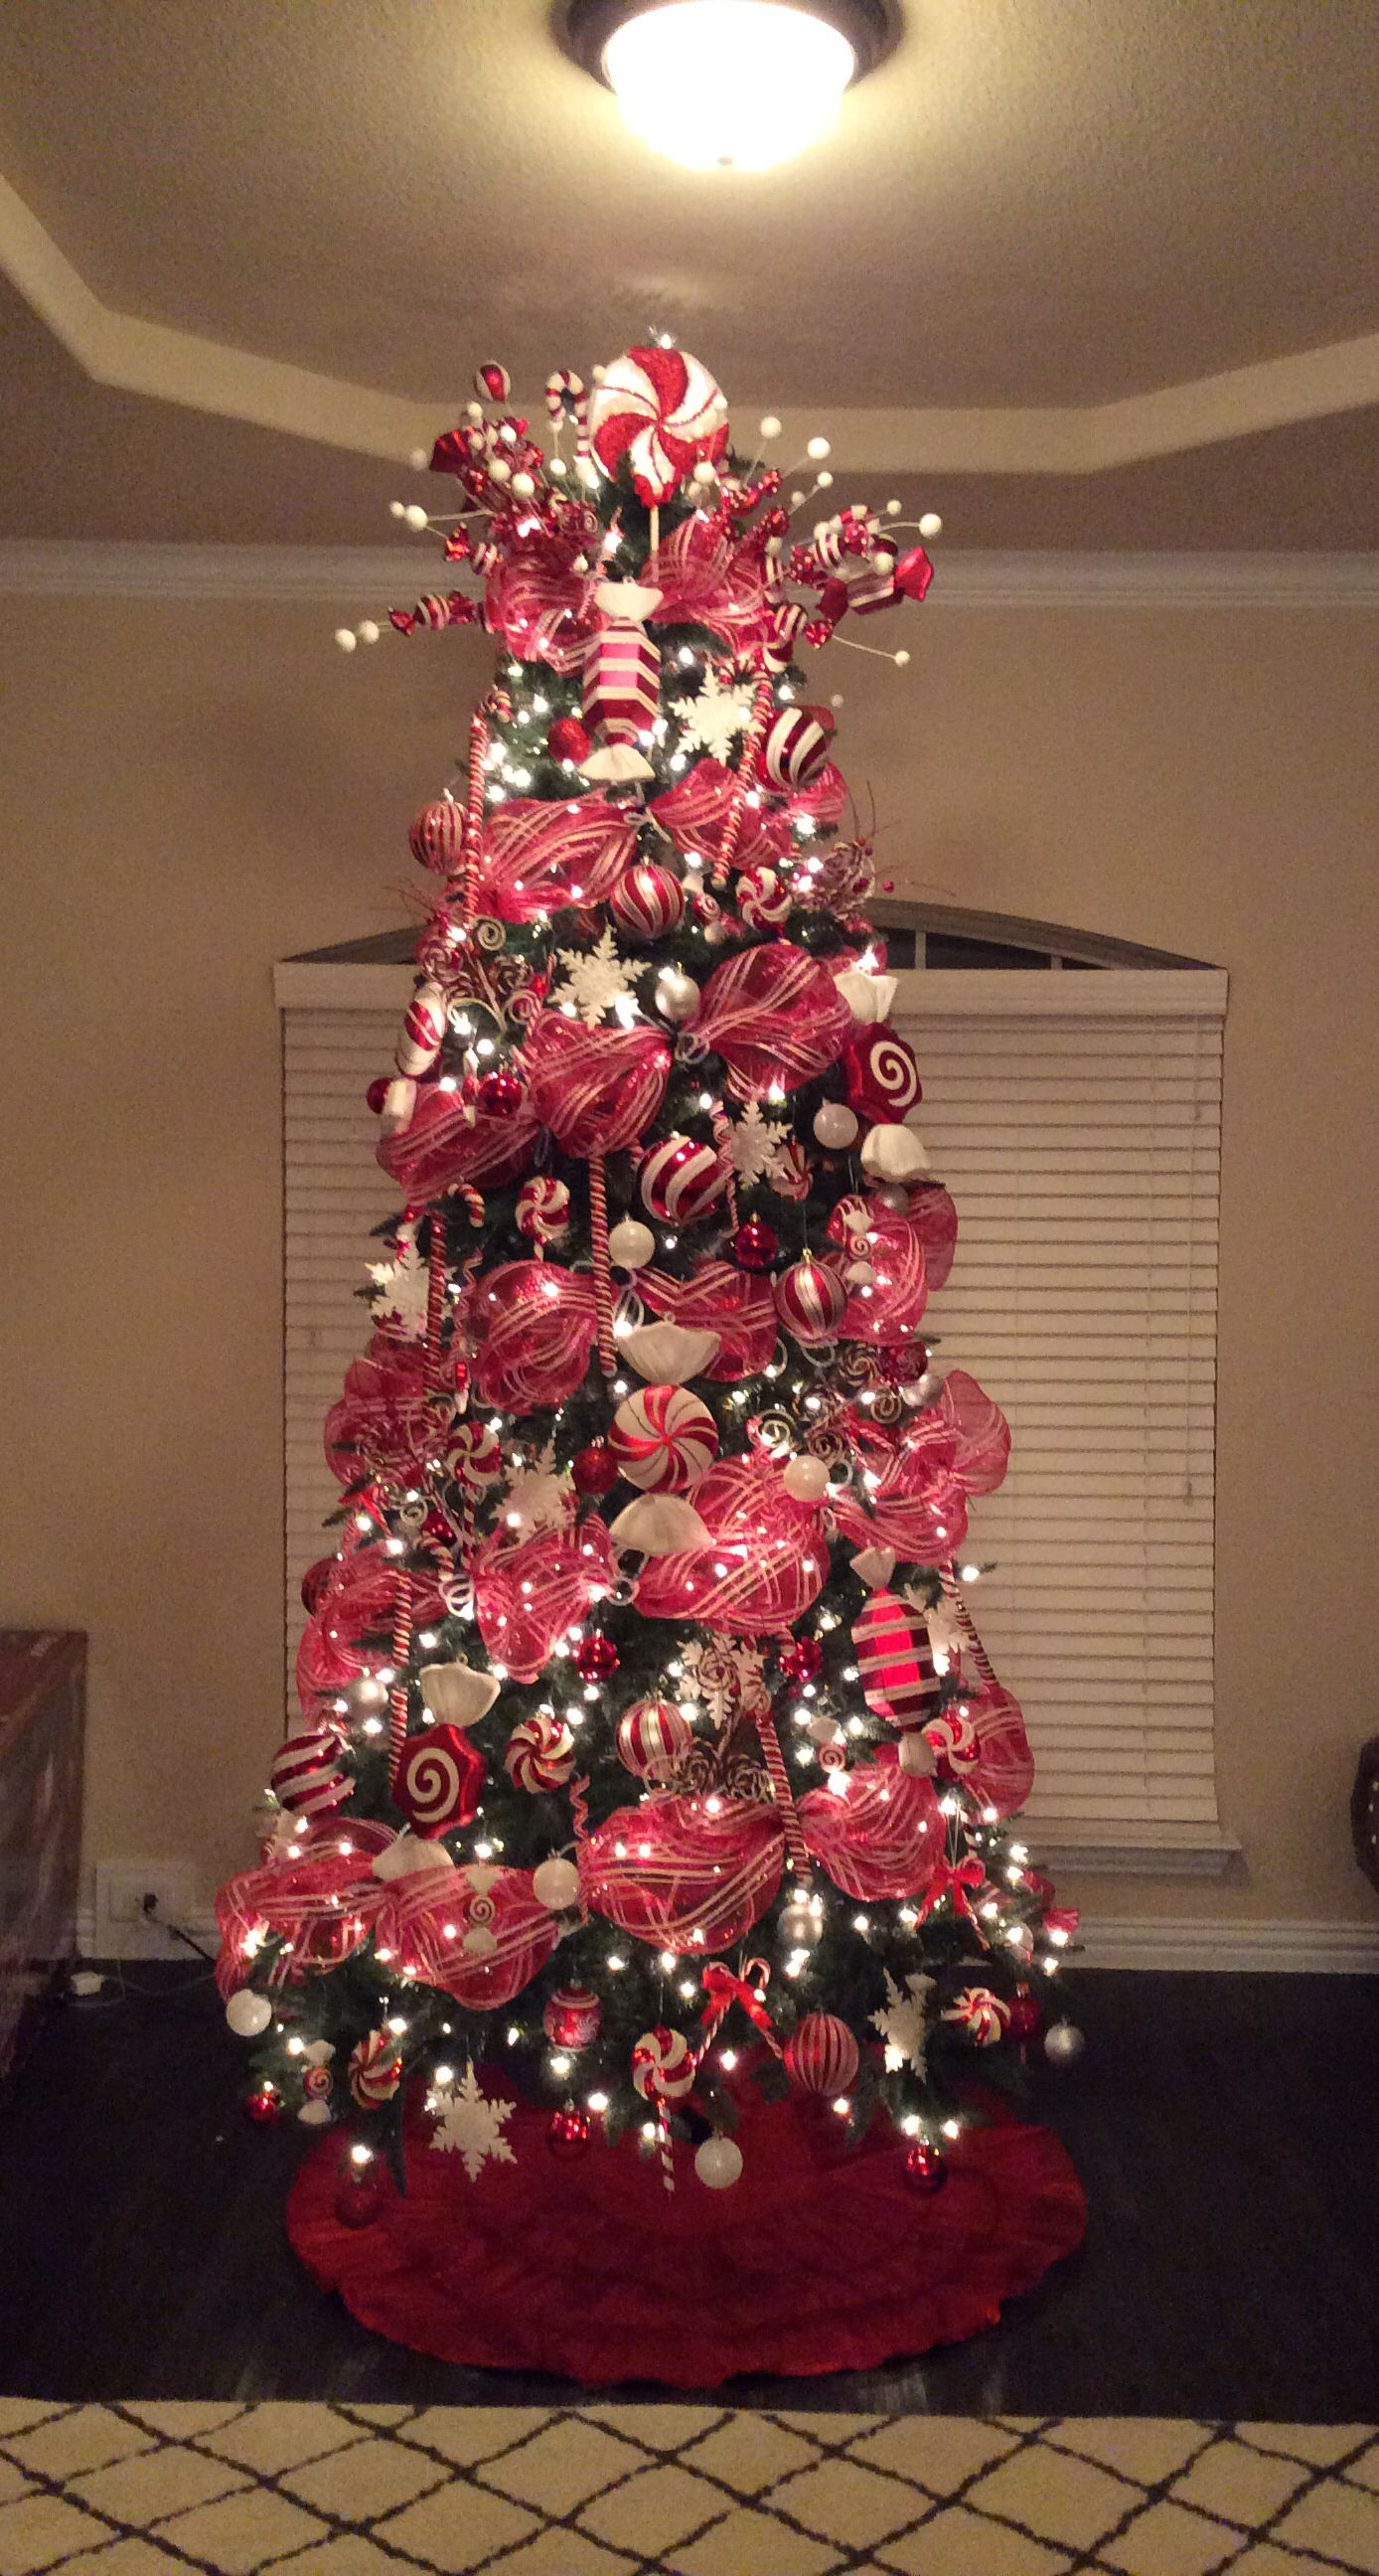 Christmas tree Christmas red and white Christmas tree